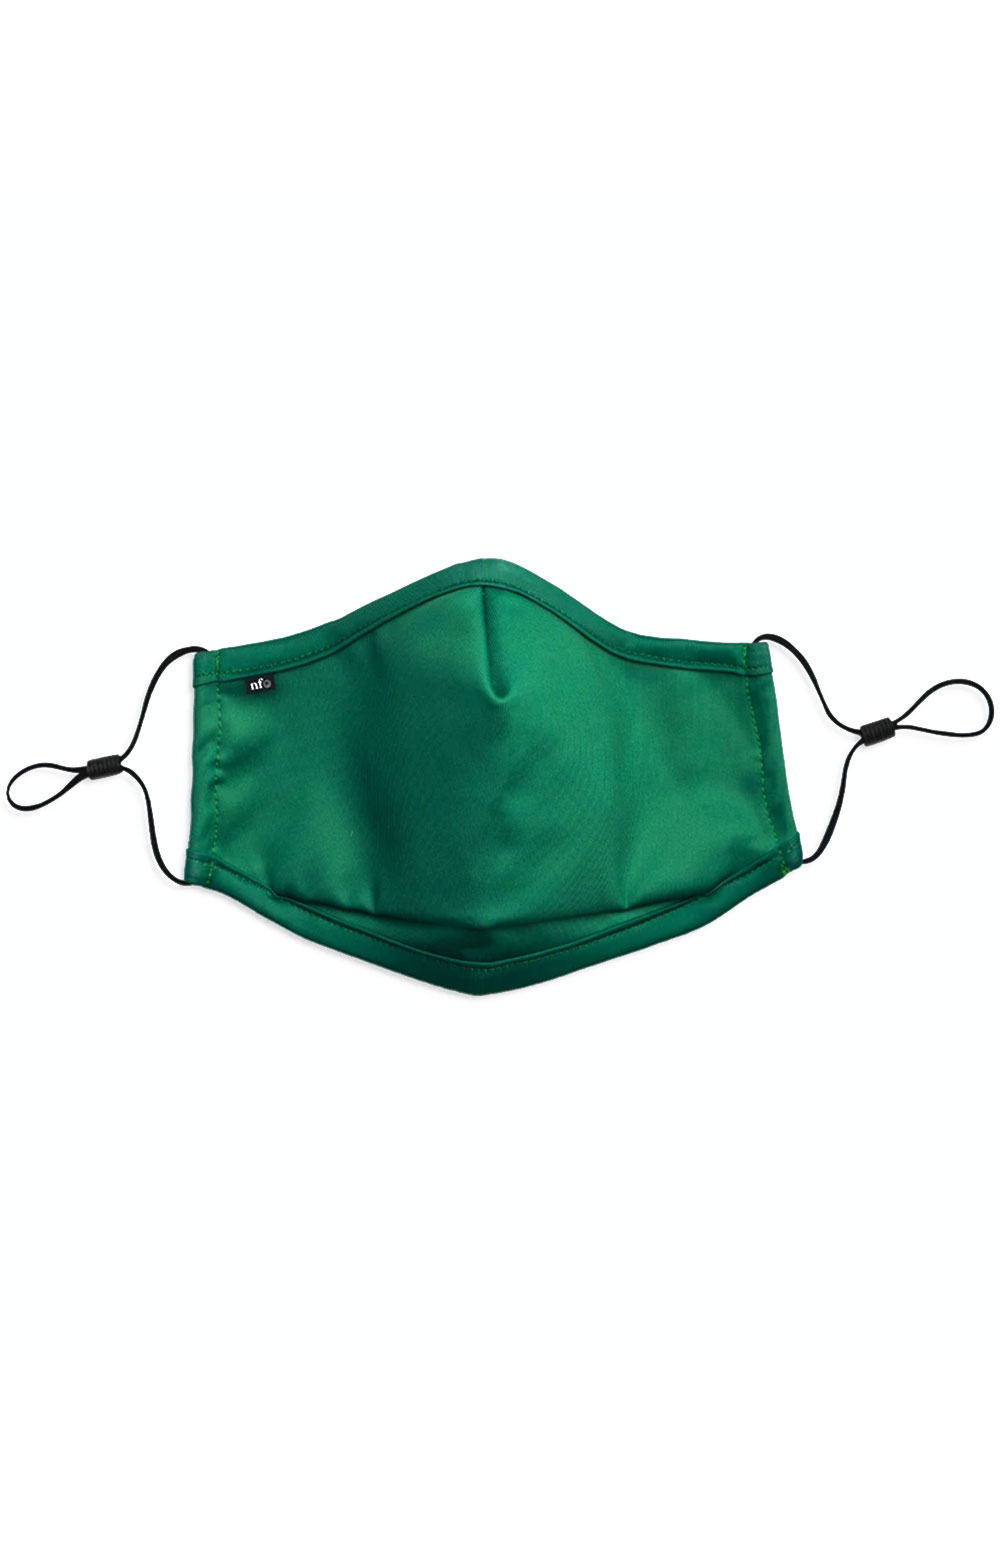 Adult Anti Bacterial Knit Face Mask - Green